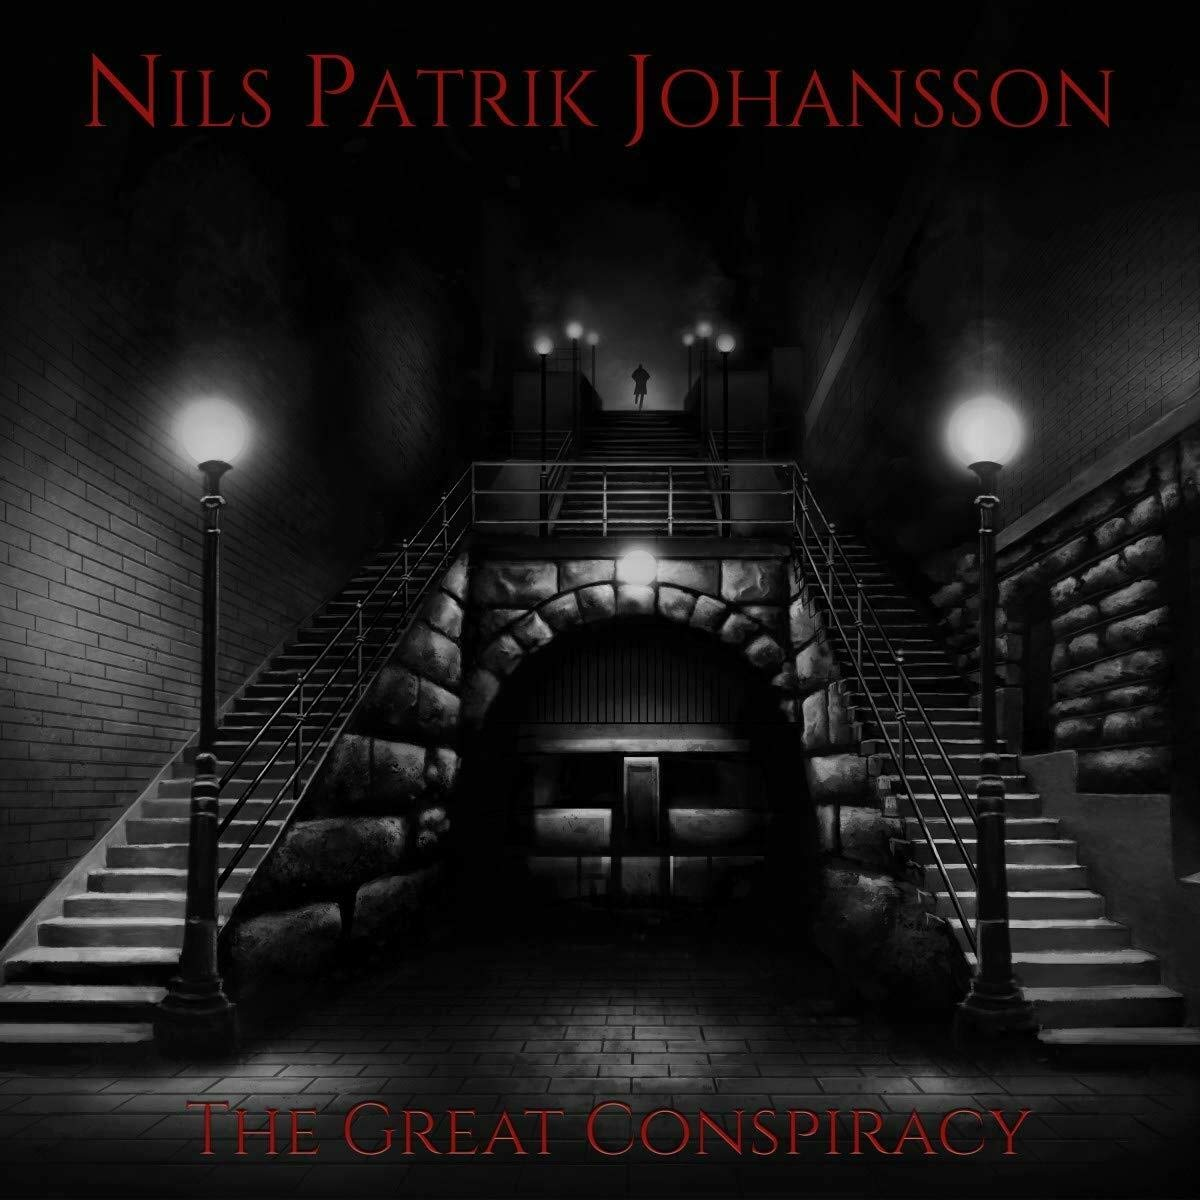 Nils Patrik Johansson – The Great Conspiracy